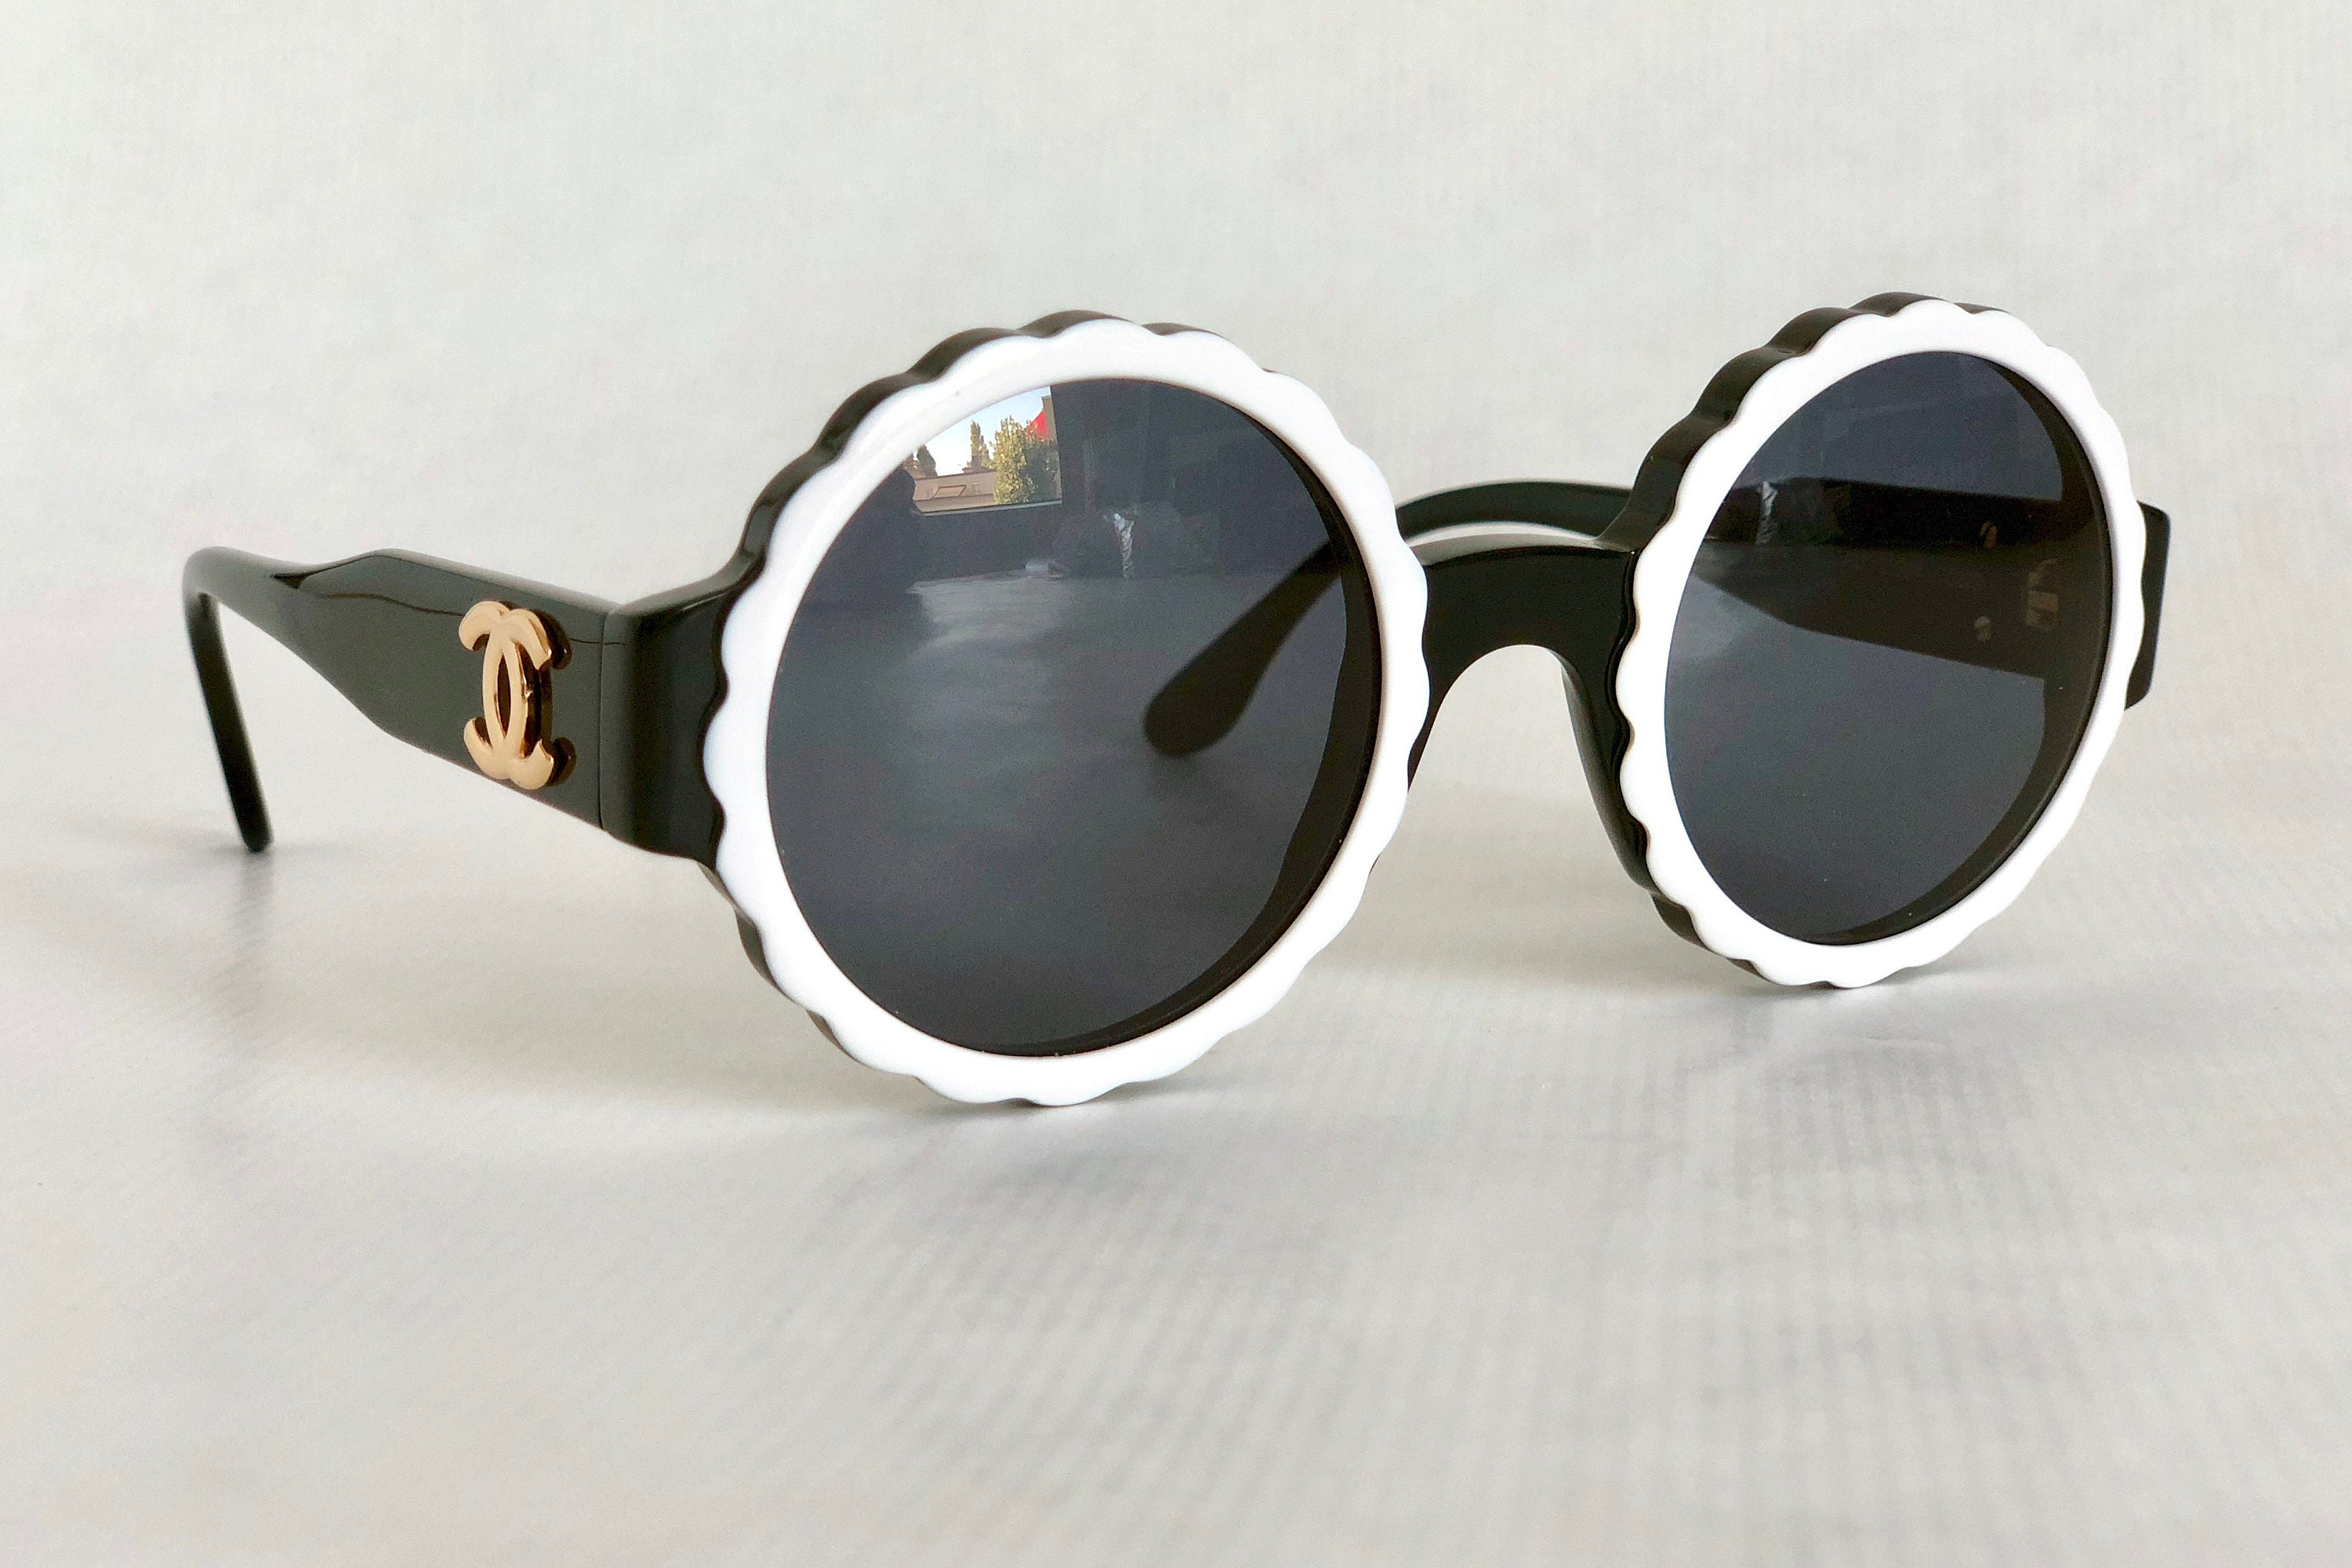 85d34fa9ab585 CHANEL 03524 C0229 Vintage Sunglasses New Old Stock including ...